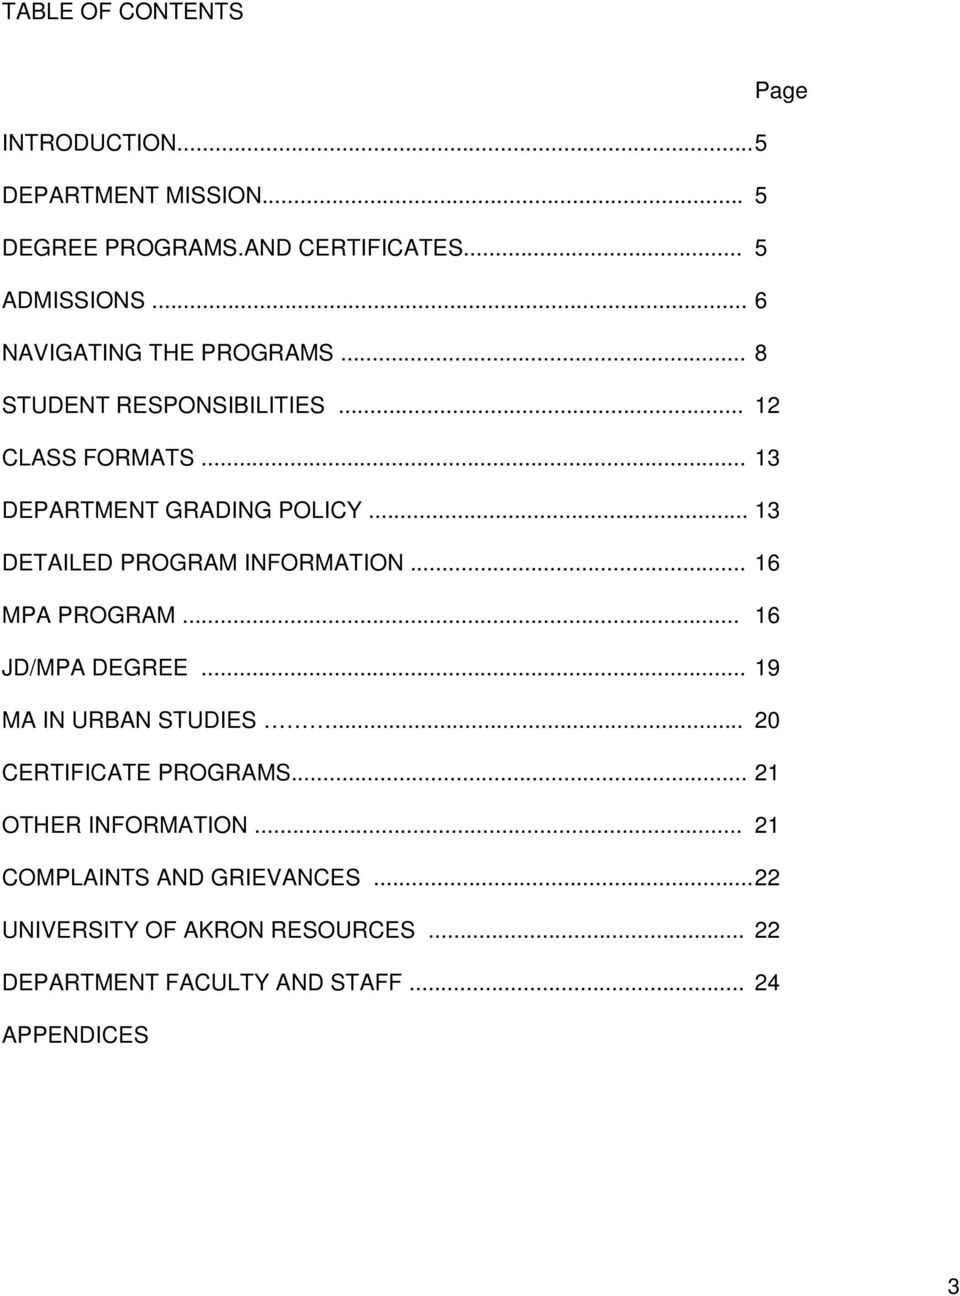 .. 13 DETAILED PROGRAM INFORMATION... 16 MPA PROGRAM... 16 JD/MPA DEGREE... 19 MA IN URBAN STUDIES... 20 CERTIFICATE PROGRAMS.